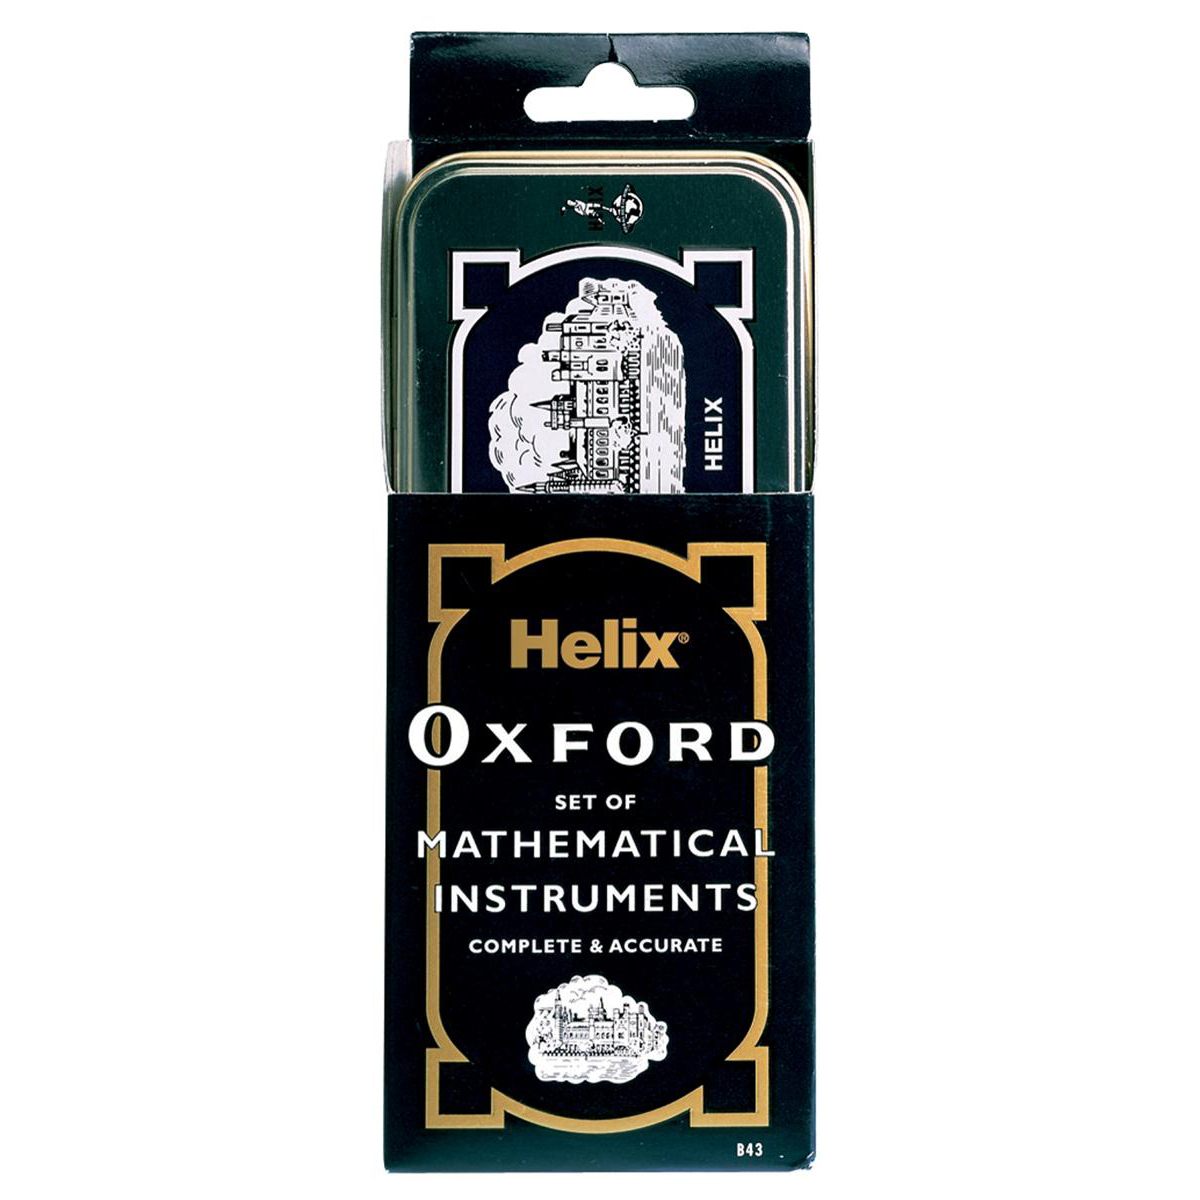 Helix Oxford Maths Set includes Various Stationery Items and Storage Tin Black Ref B43000